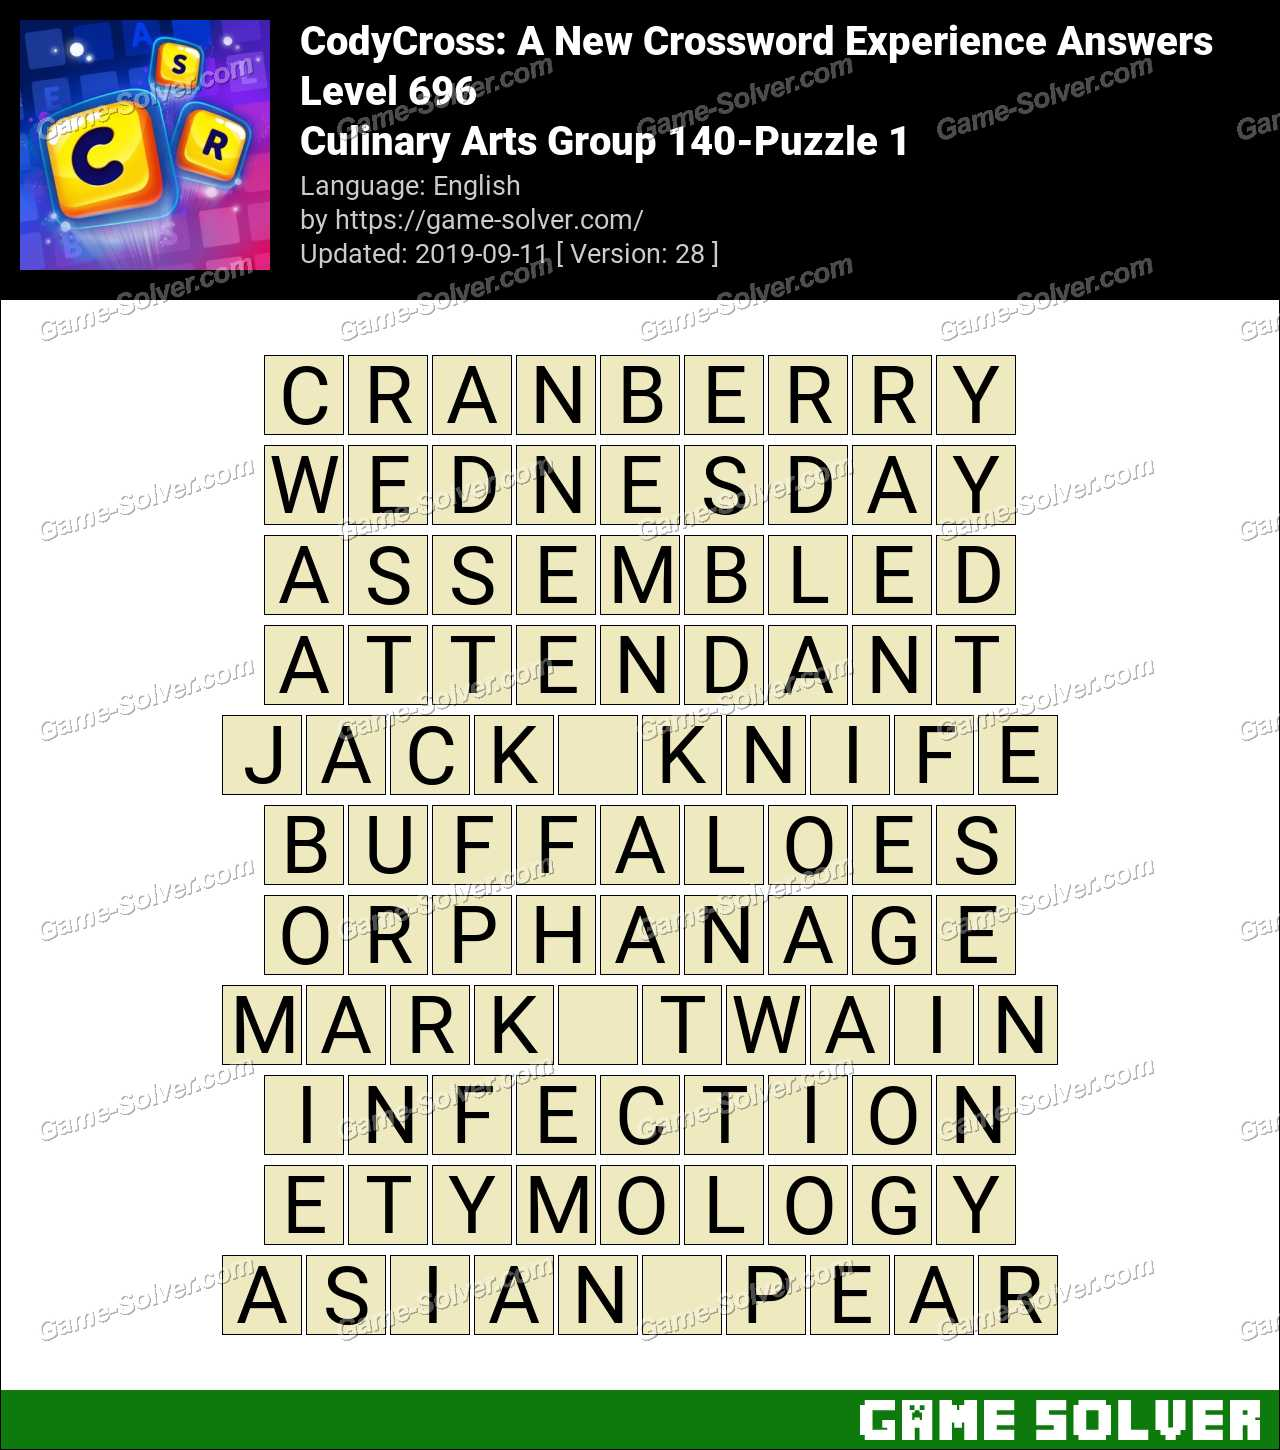 CodyCross Culinary Arts Group 140-Puzzle 1 Answers